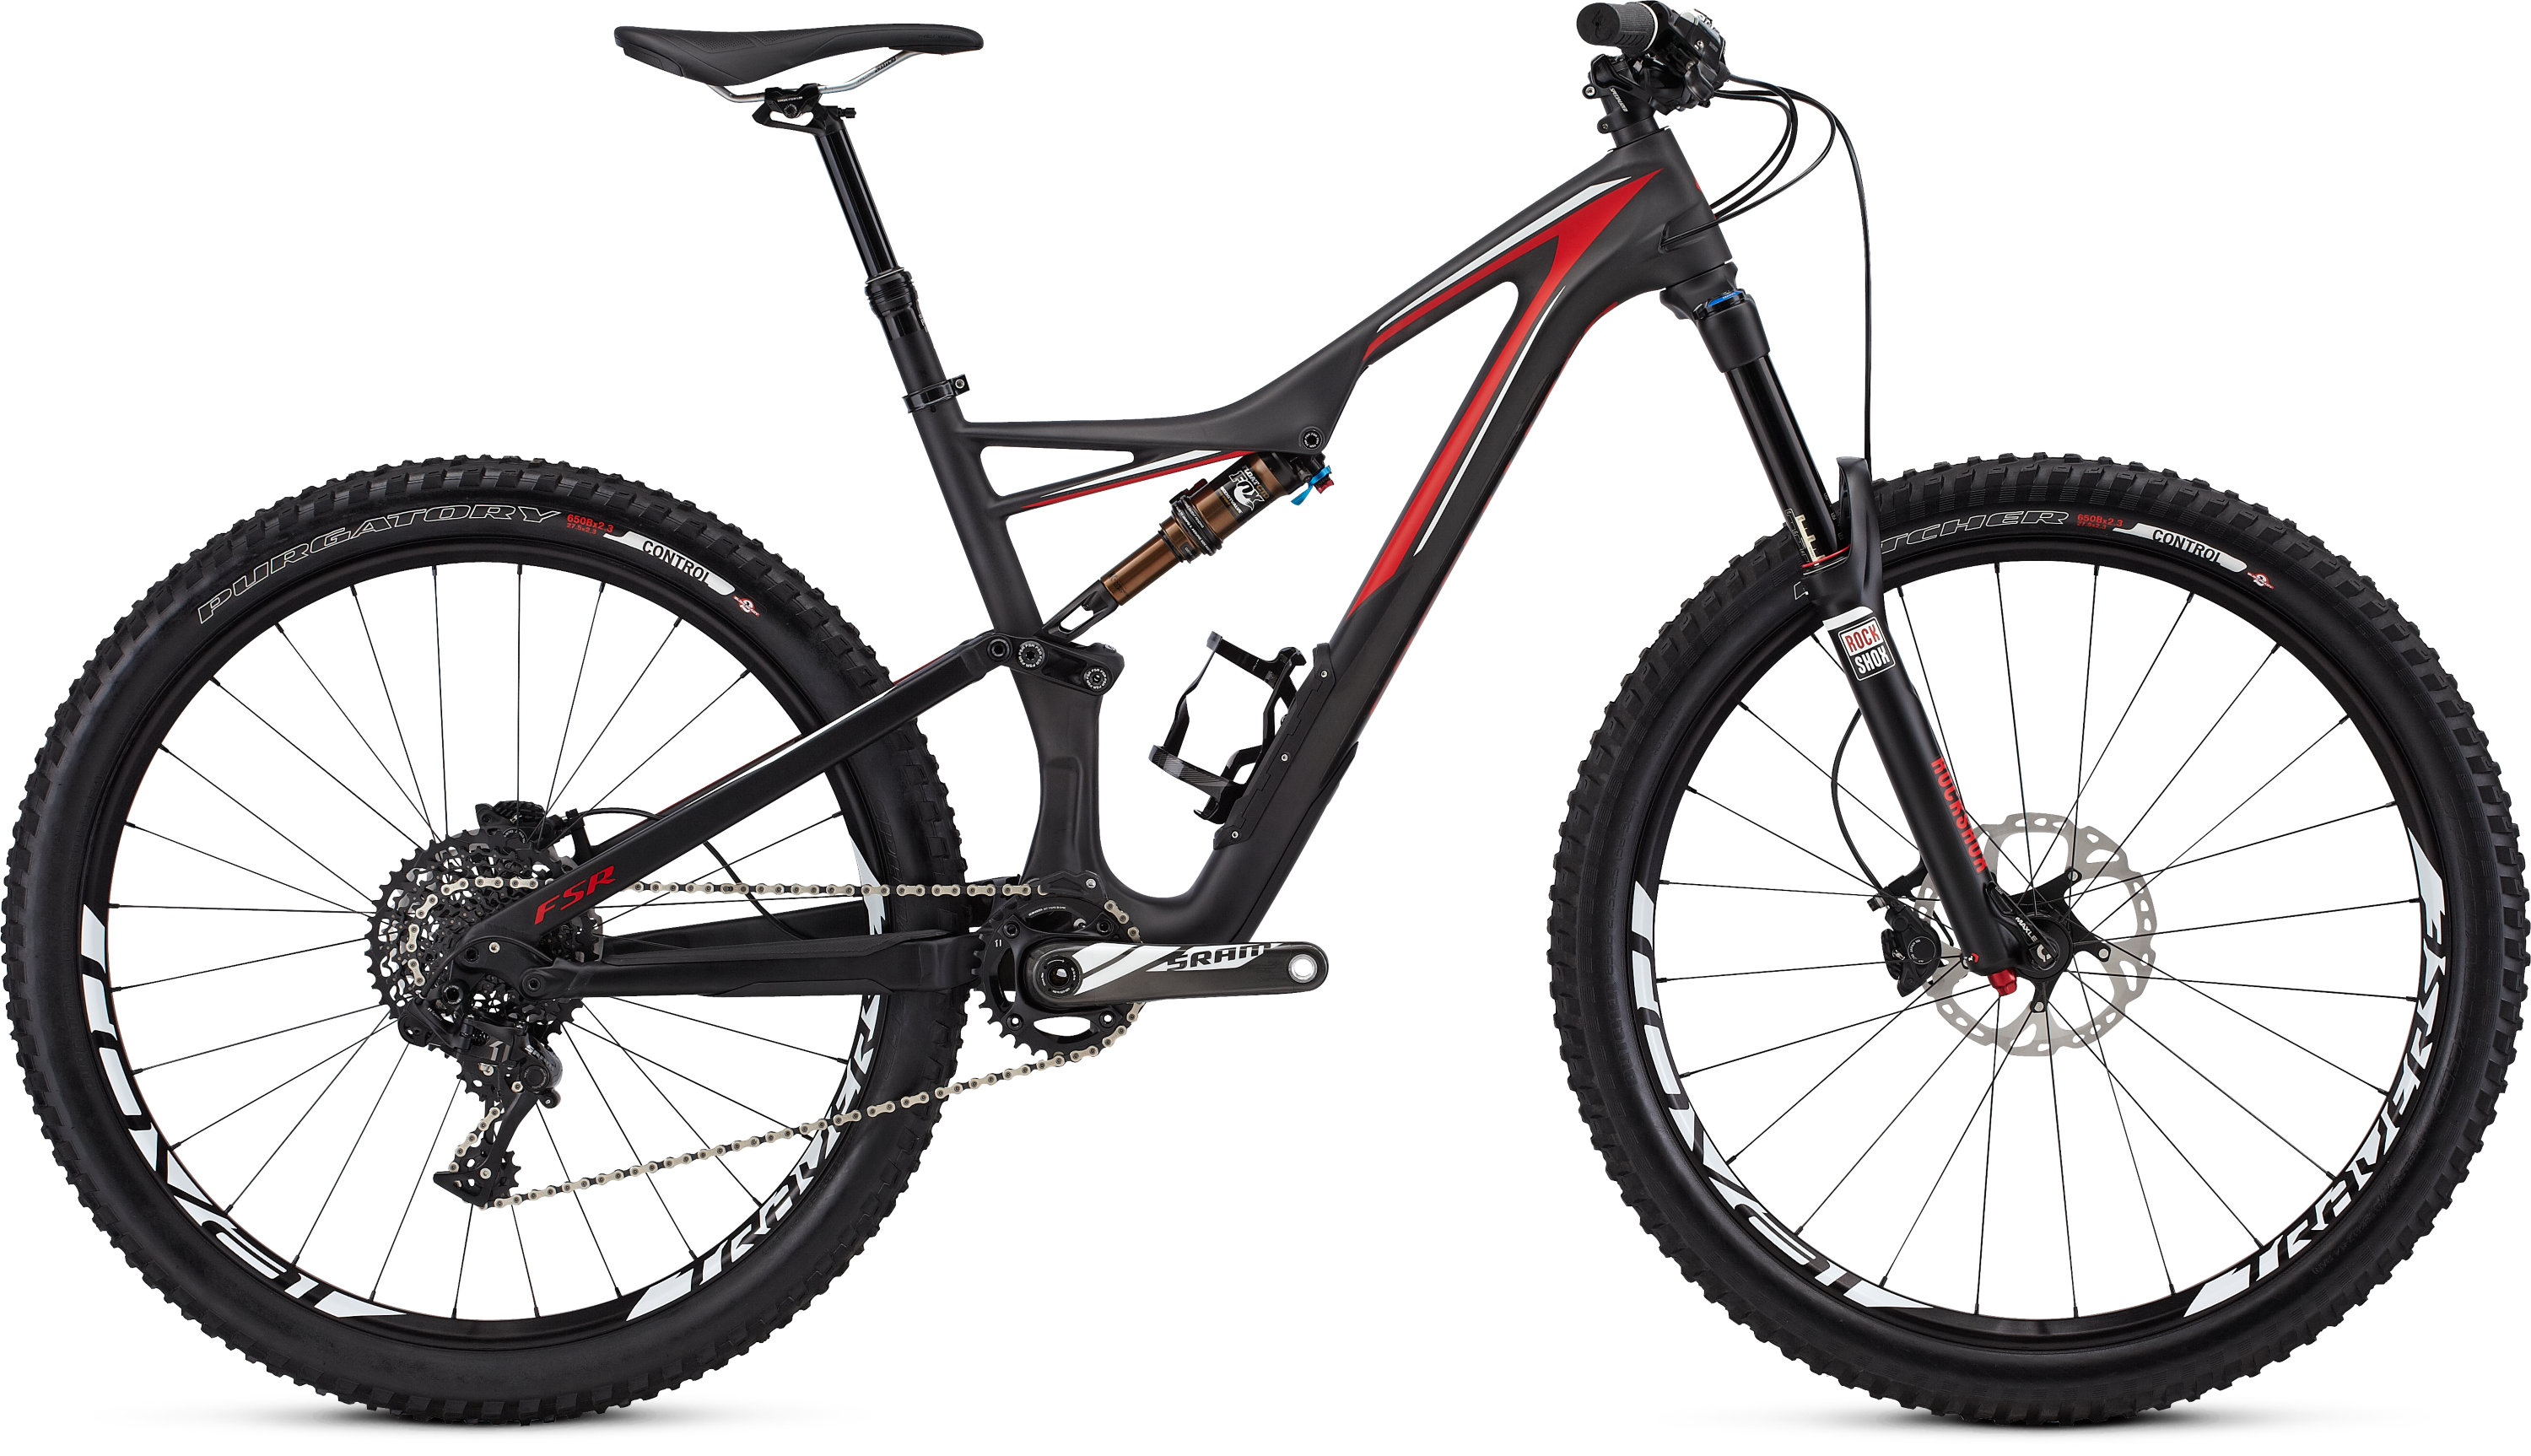 SPECIALIZED SJ FSR EXPERT CARBON 650B CARB/RED/WHT S - Bikedreams & Dustbikes